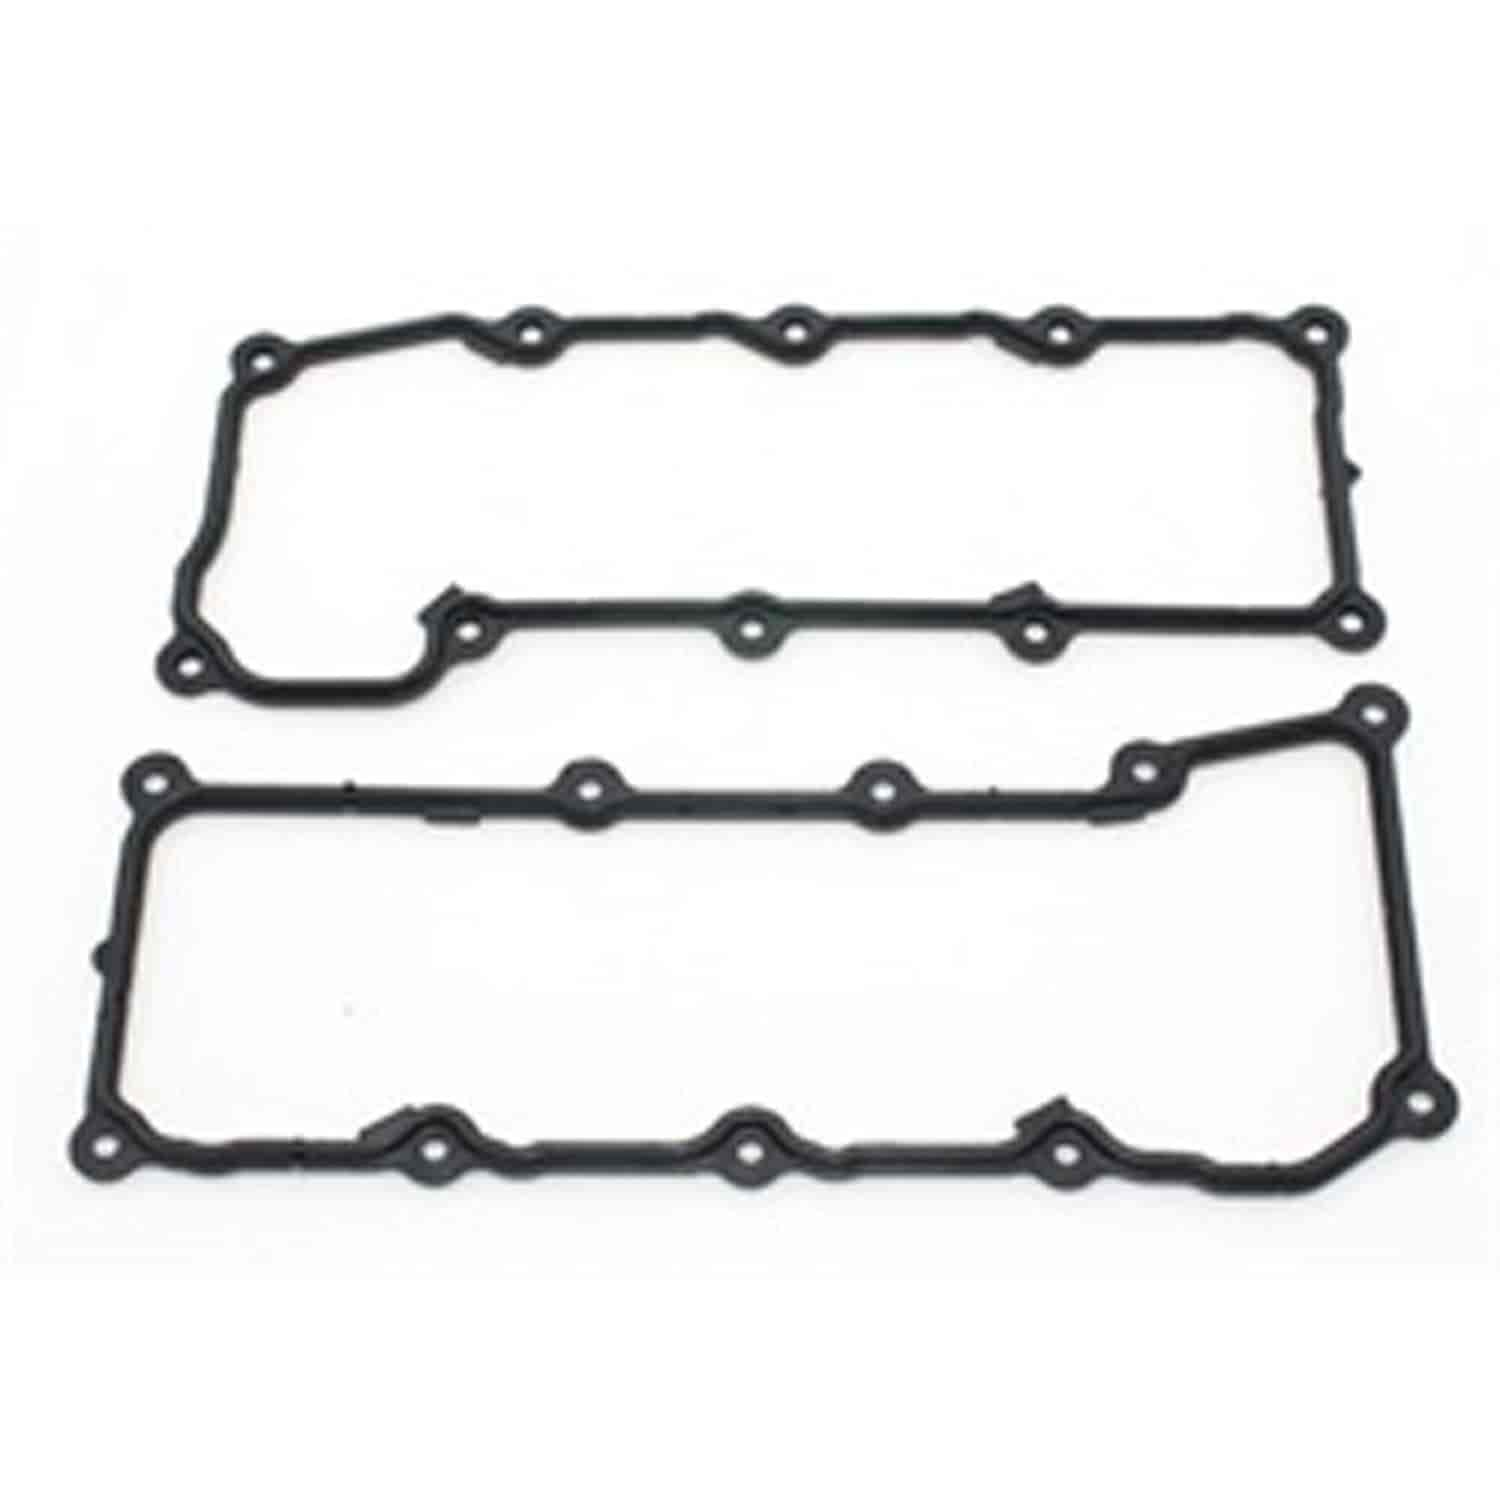 Rugged Ridge 11 Lh Valve Cover Gasket 3 7